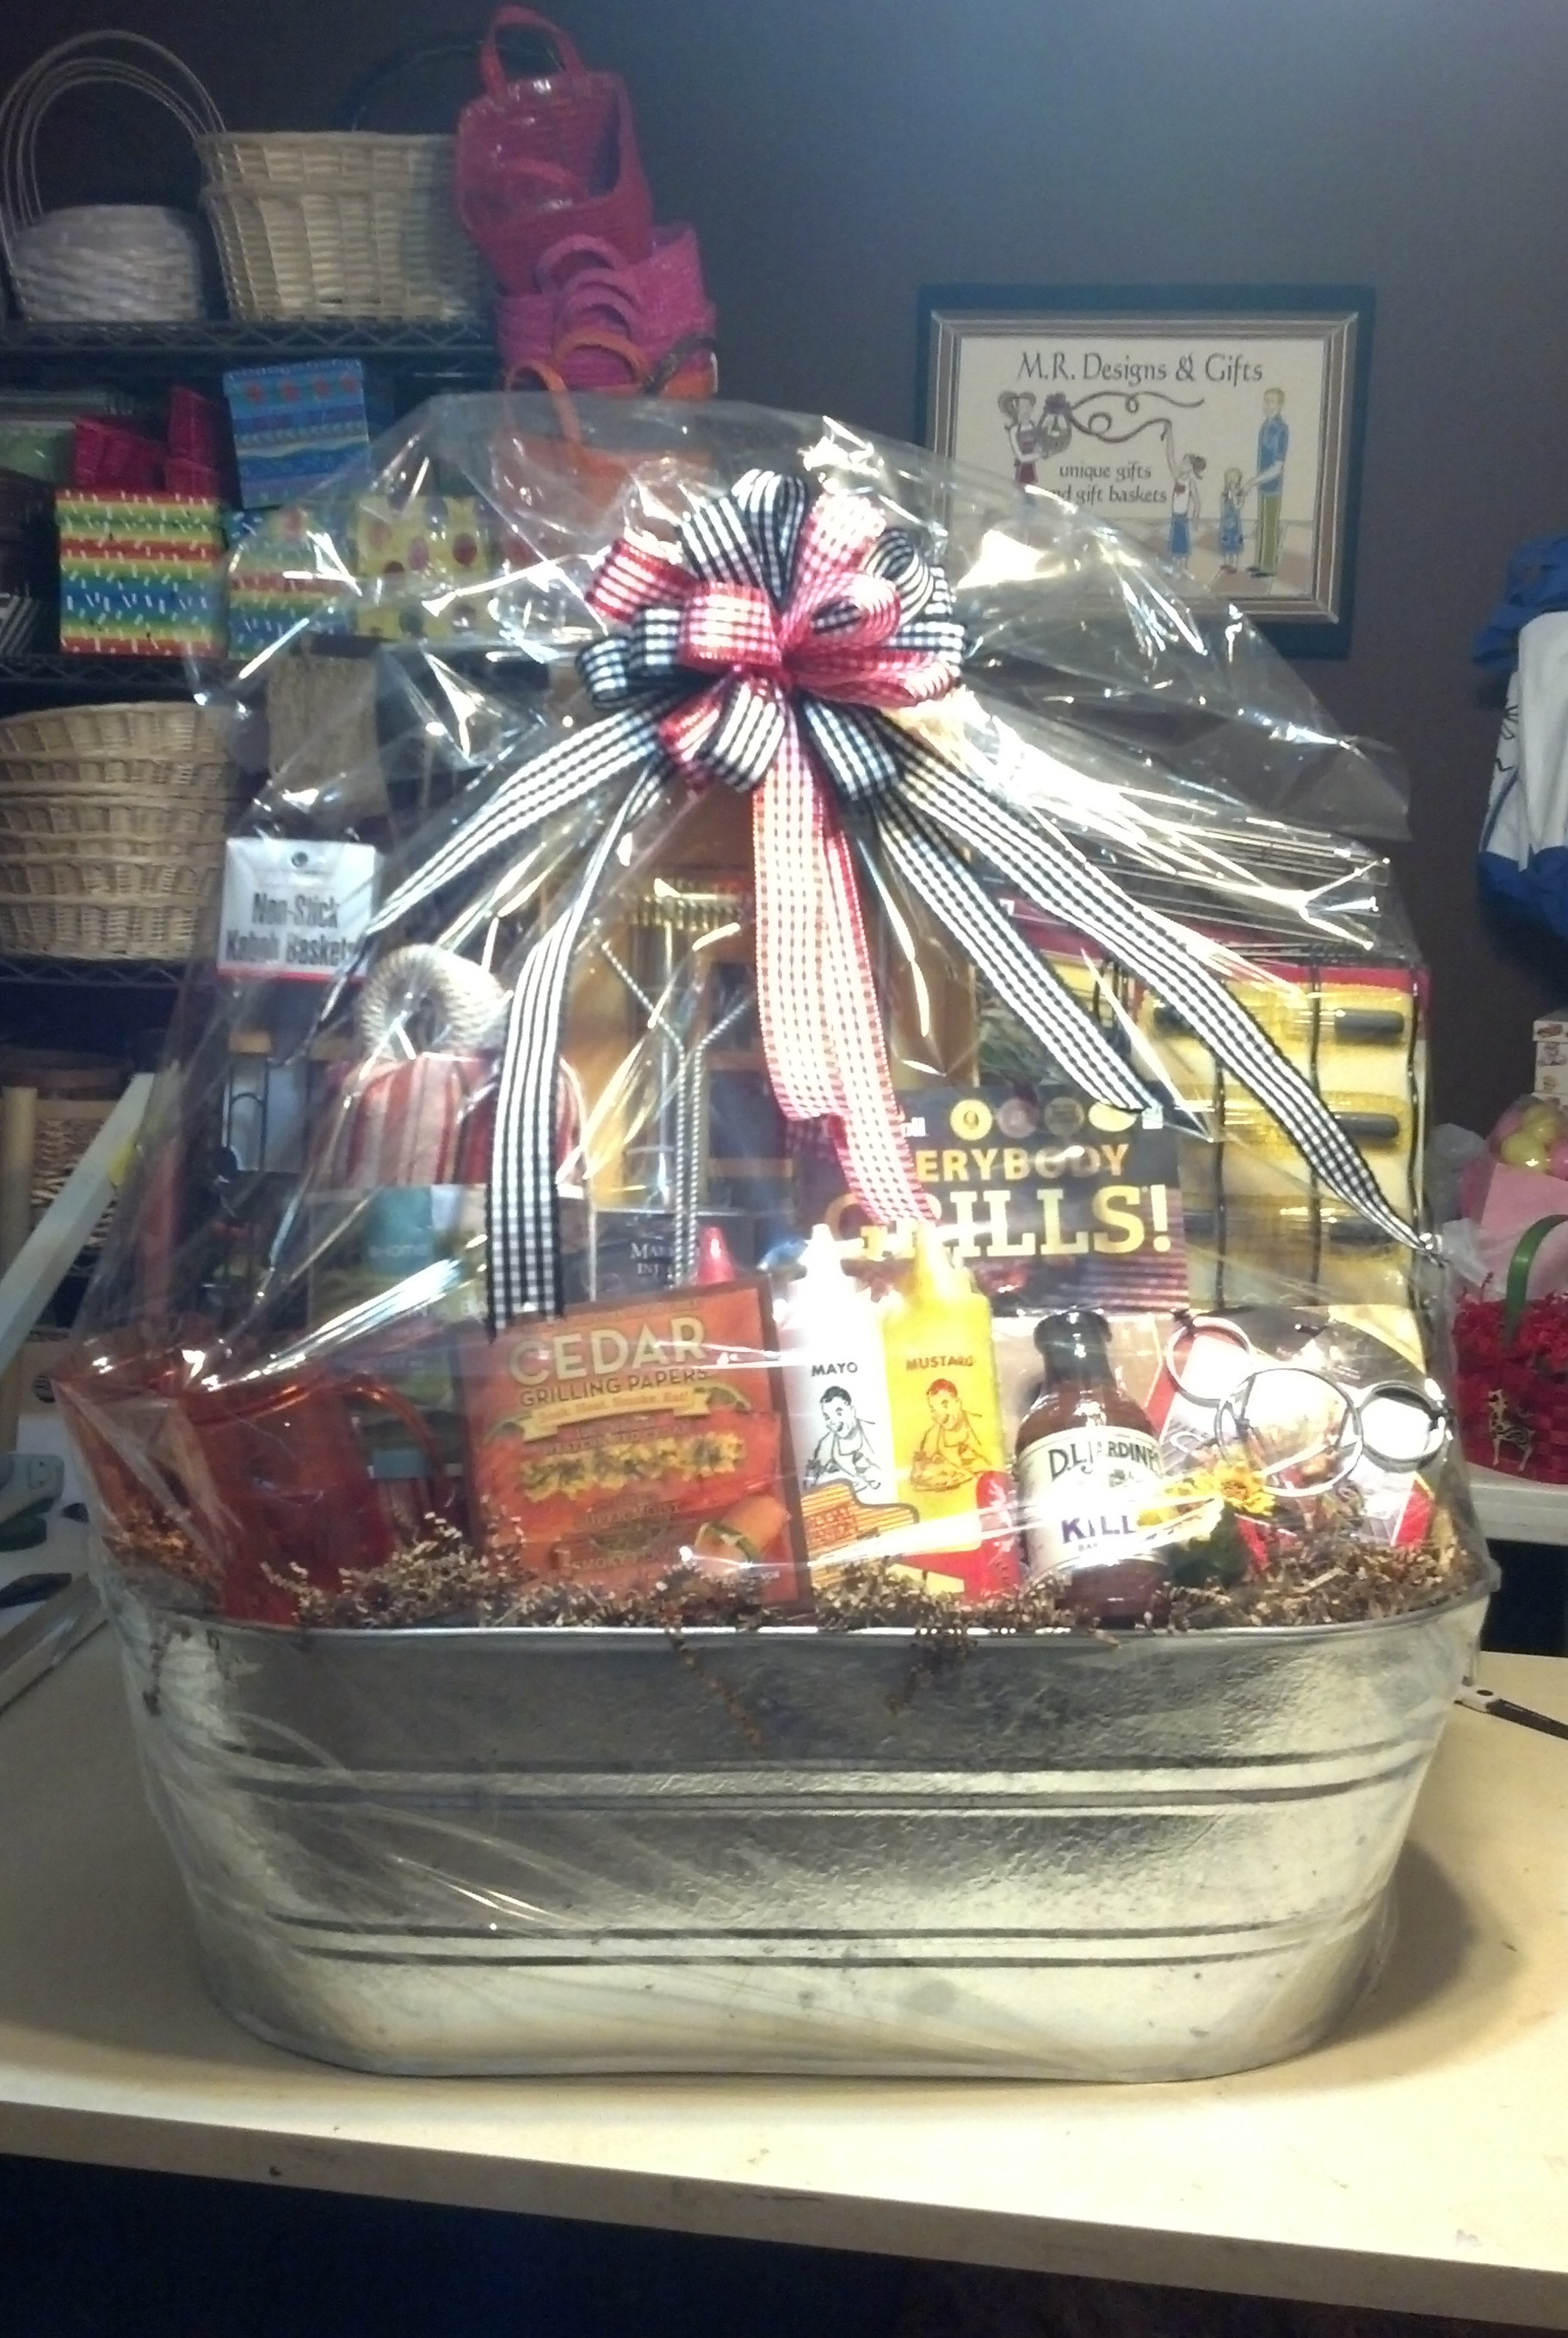 Best ideas about Silent Auction Gift Basket Ideas . Save or Pin Special Event and Silent Auction Gift Basket Ideas by M R Now.